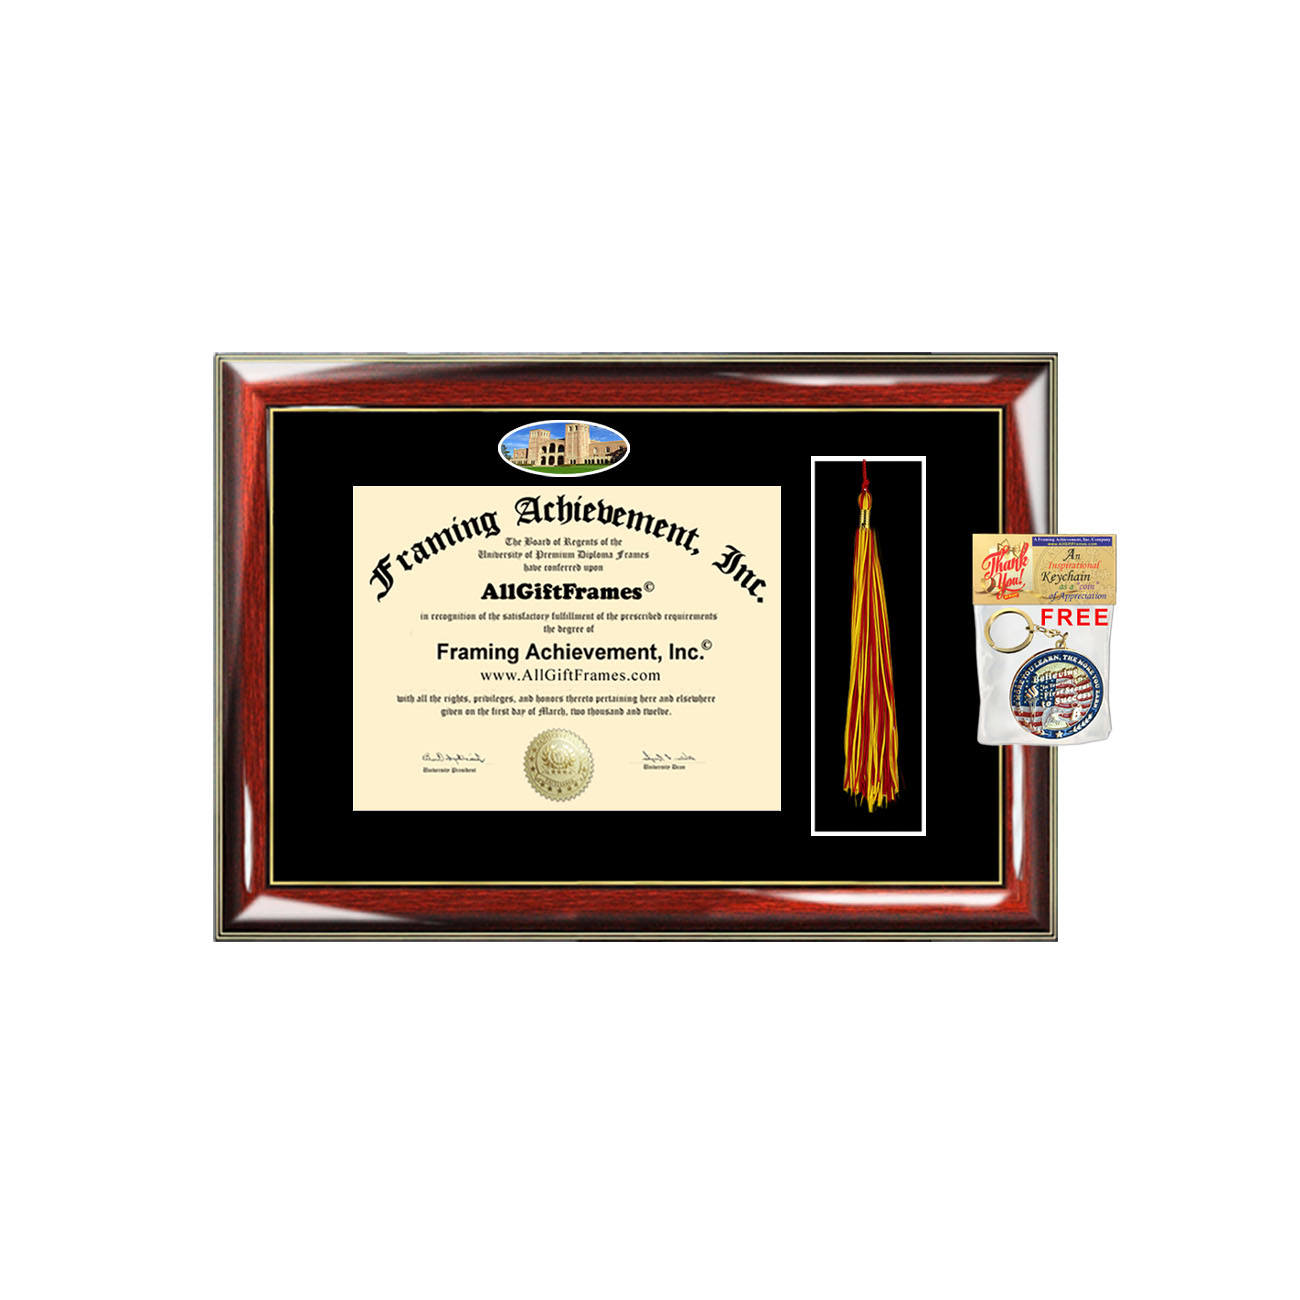 University of california los angeles diploma frames ucla tassel box di university of california los angeles diploma frames ucla tassel box diploma framing certificate degree certificate case document plaque xflitez Image collections